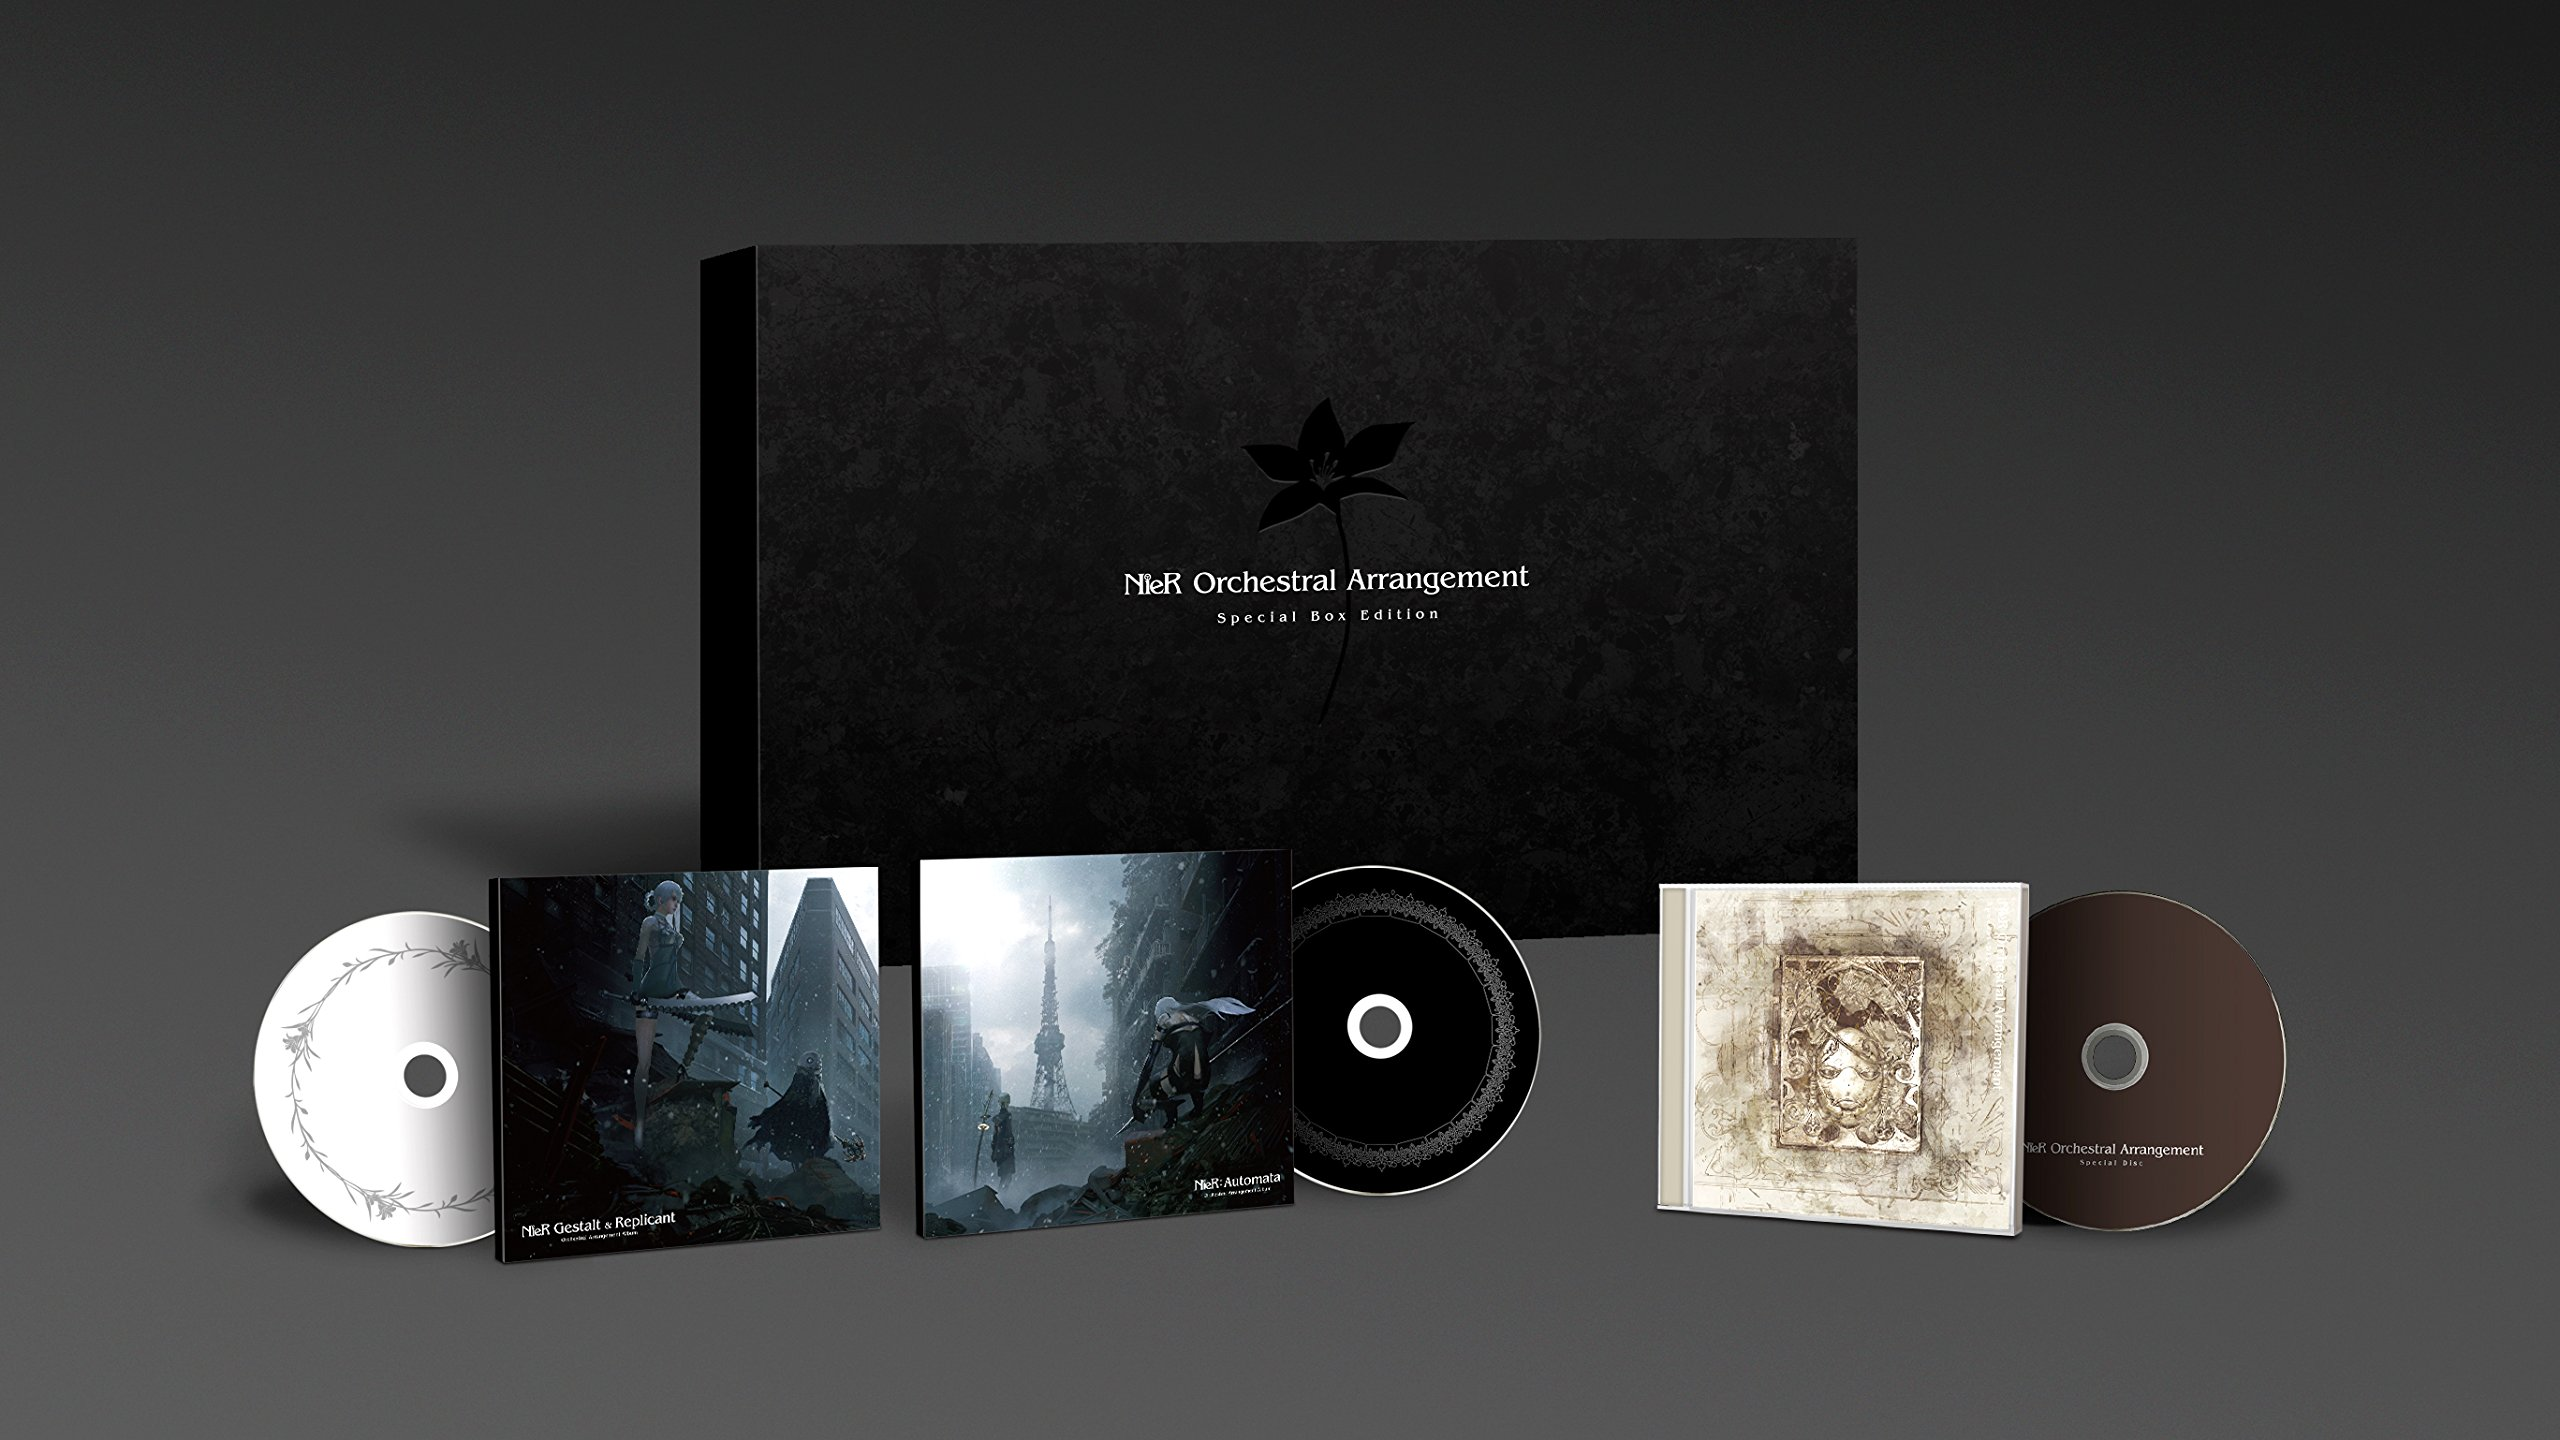 CD : Game Music - Nier: Orchestral Arrangement (original Soundtrack) (Special Edition, Boxed Set, Japan - Import)